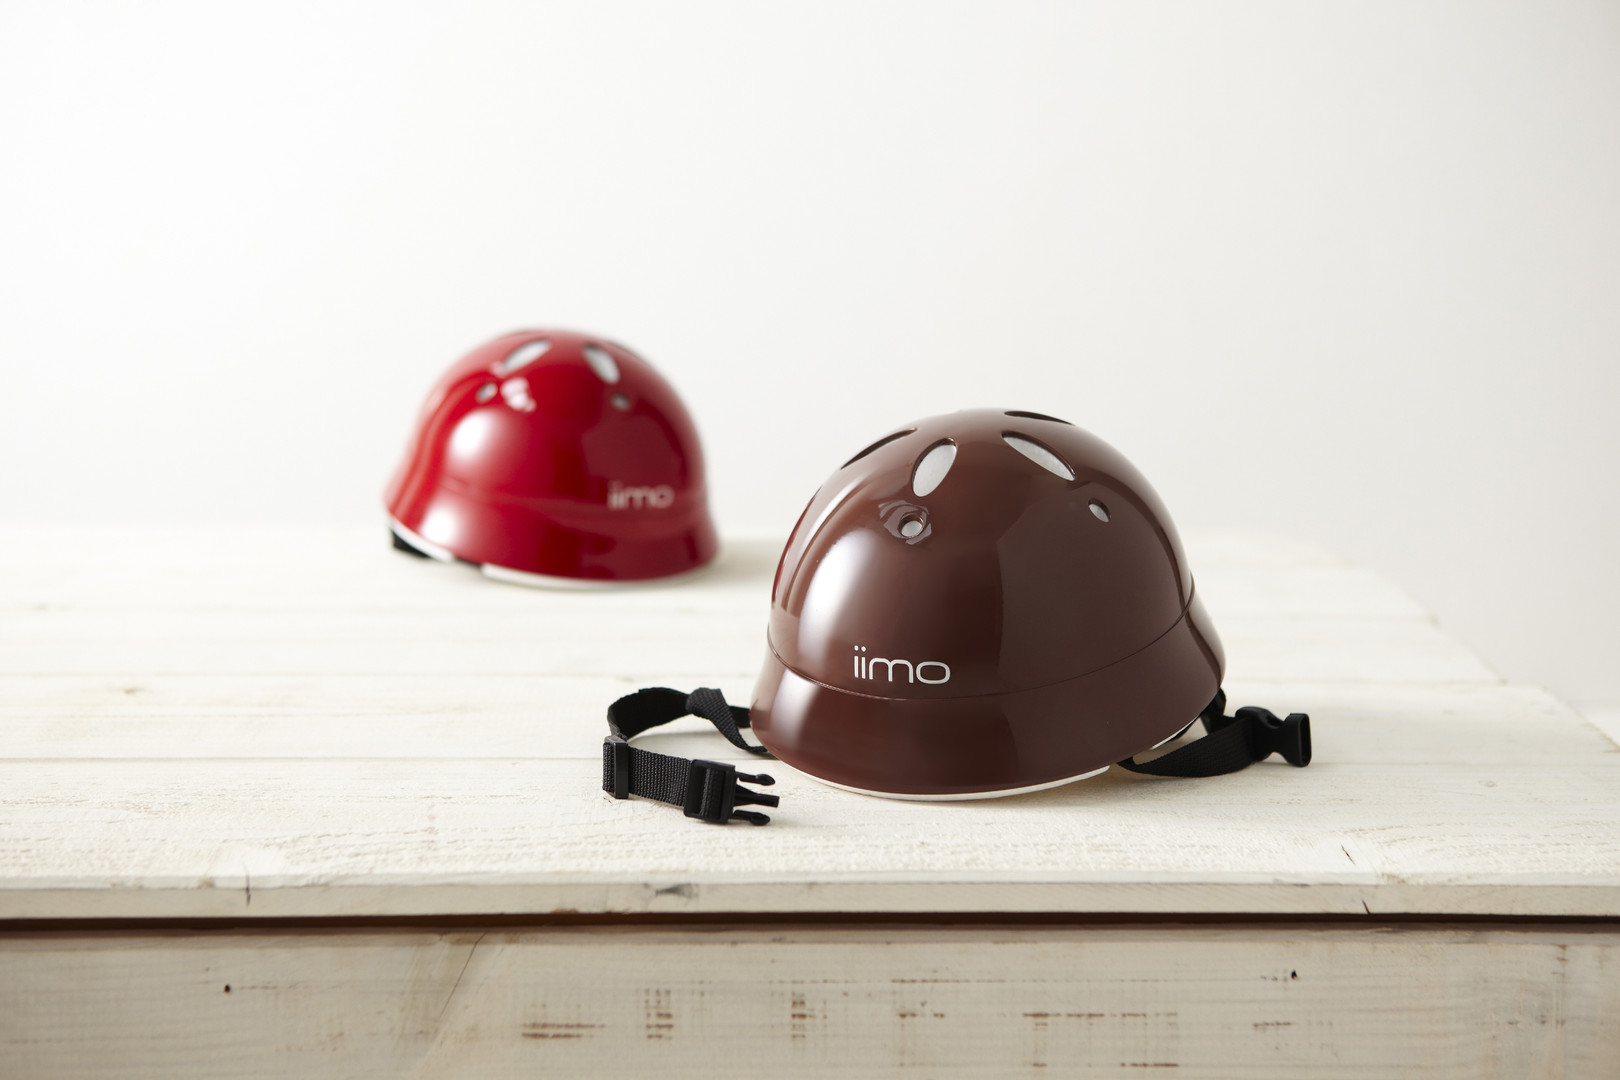 iimo_helmet_2colors_01.jpg